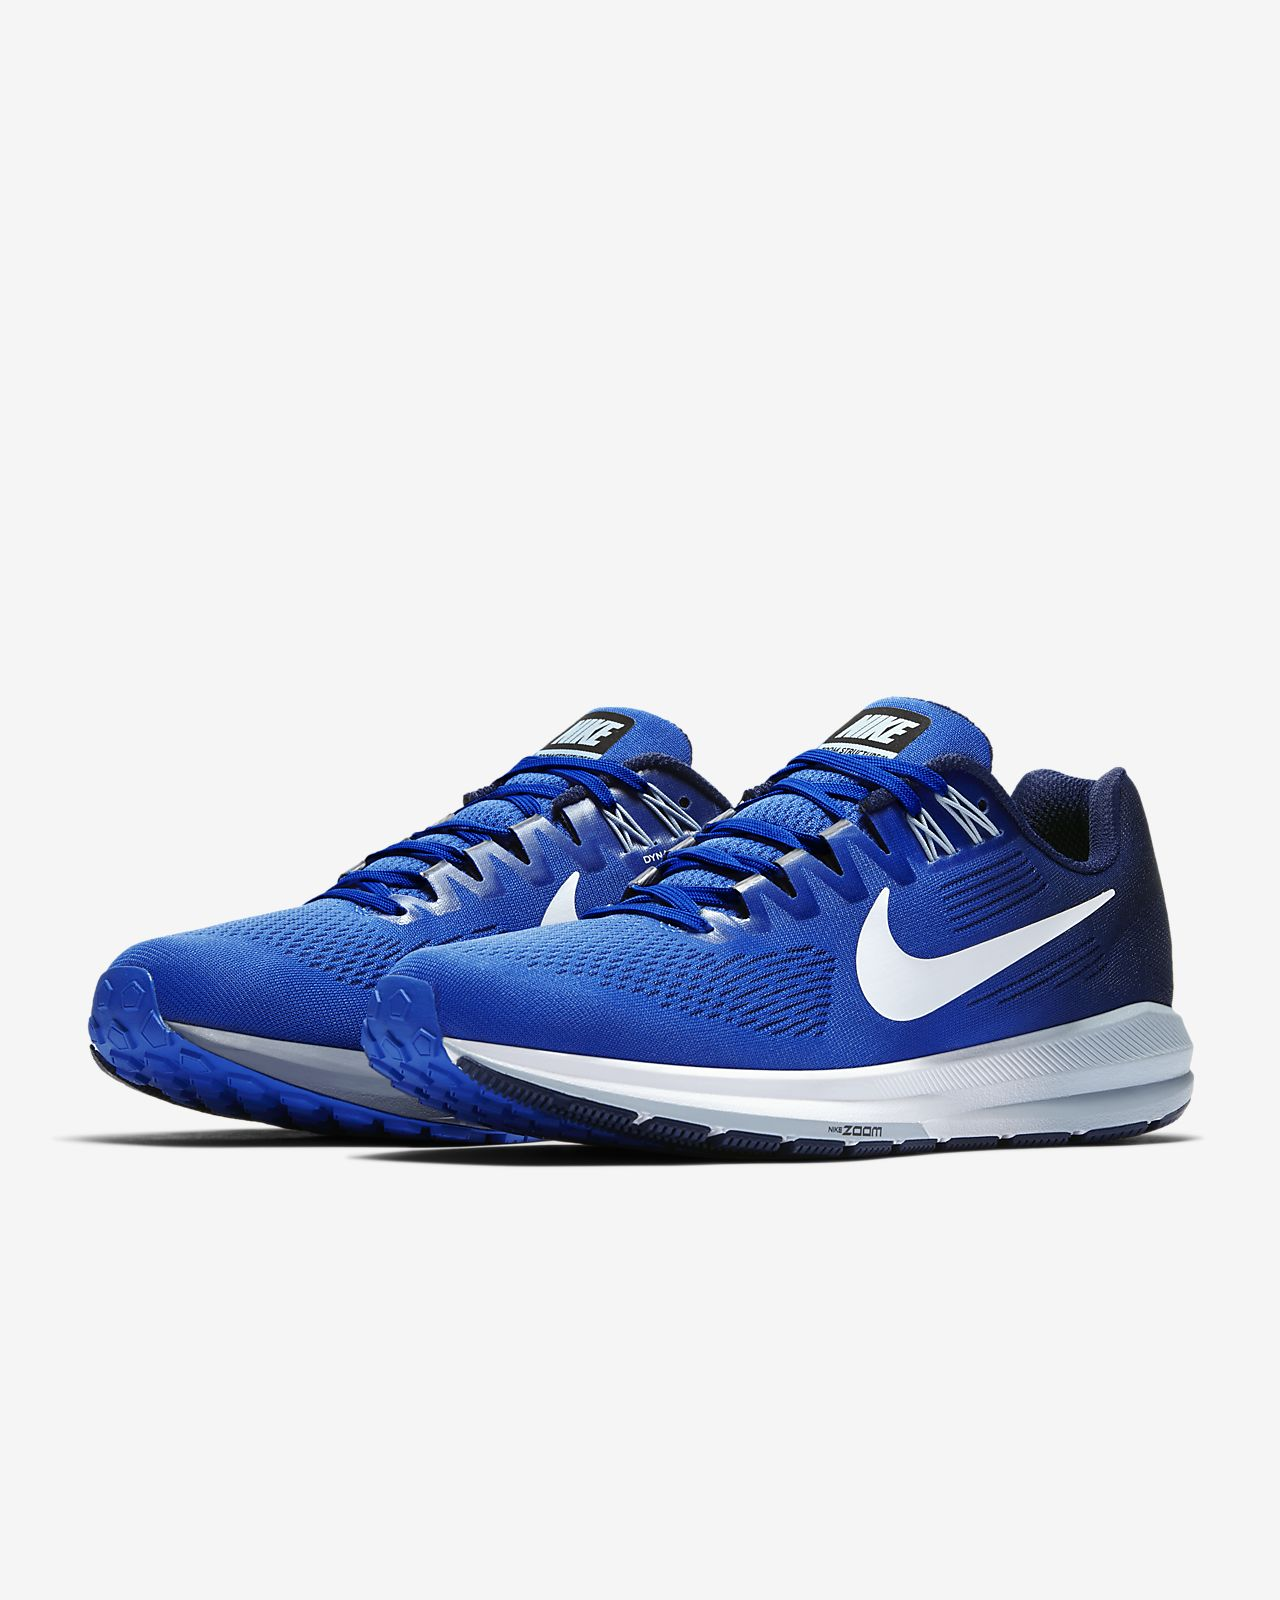 Scarpa da running Nike Air Zoom Structure 21 Uomo